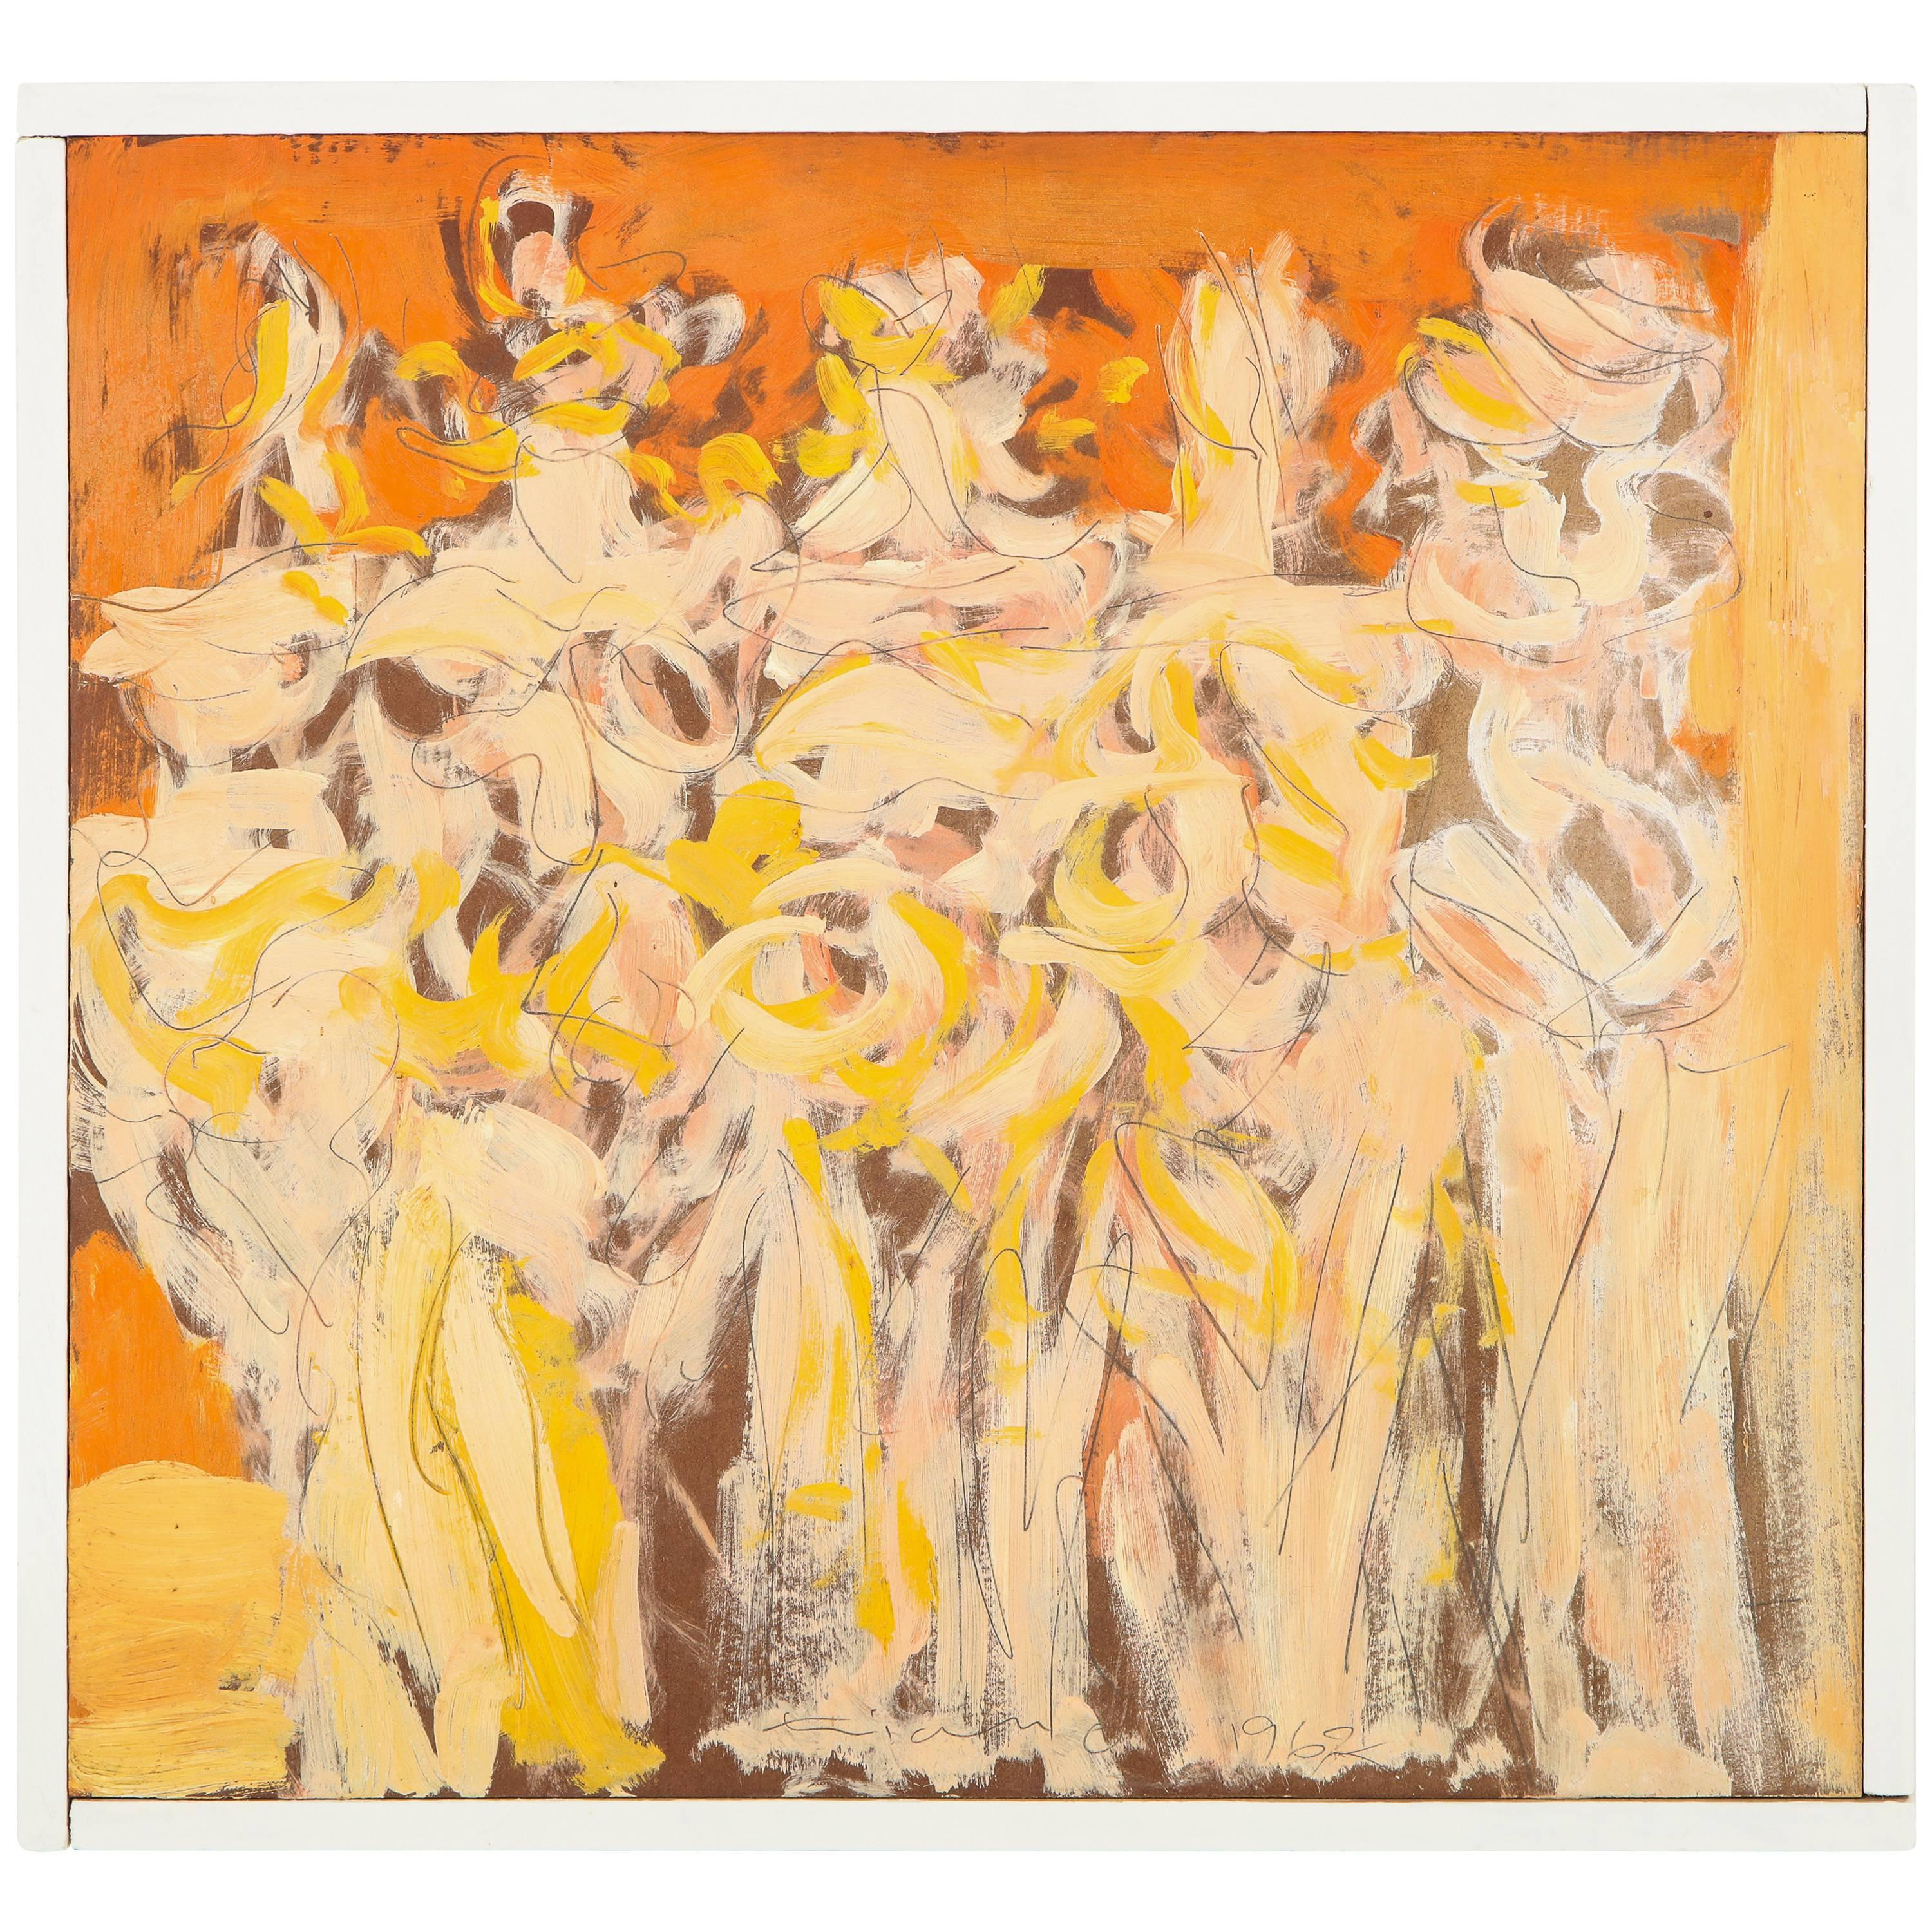 Oil Painting 'Lysistrata' by Anthony Triano Signed and Dated, 1962